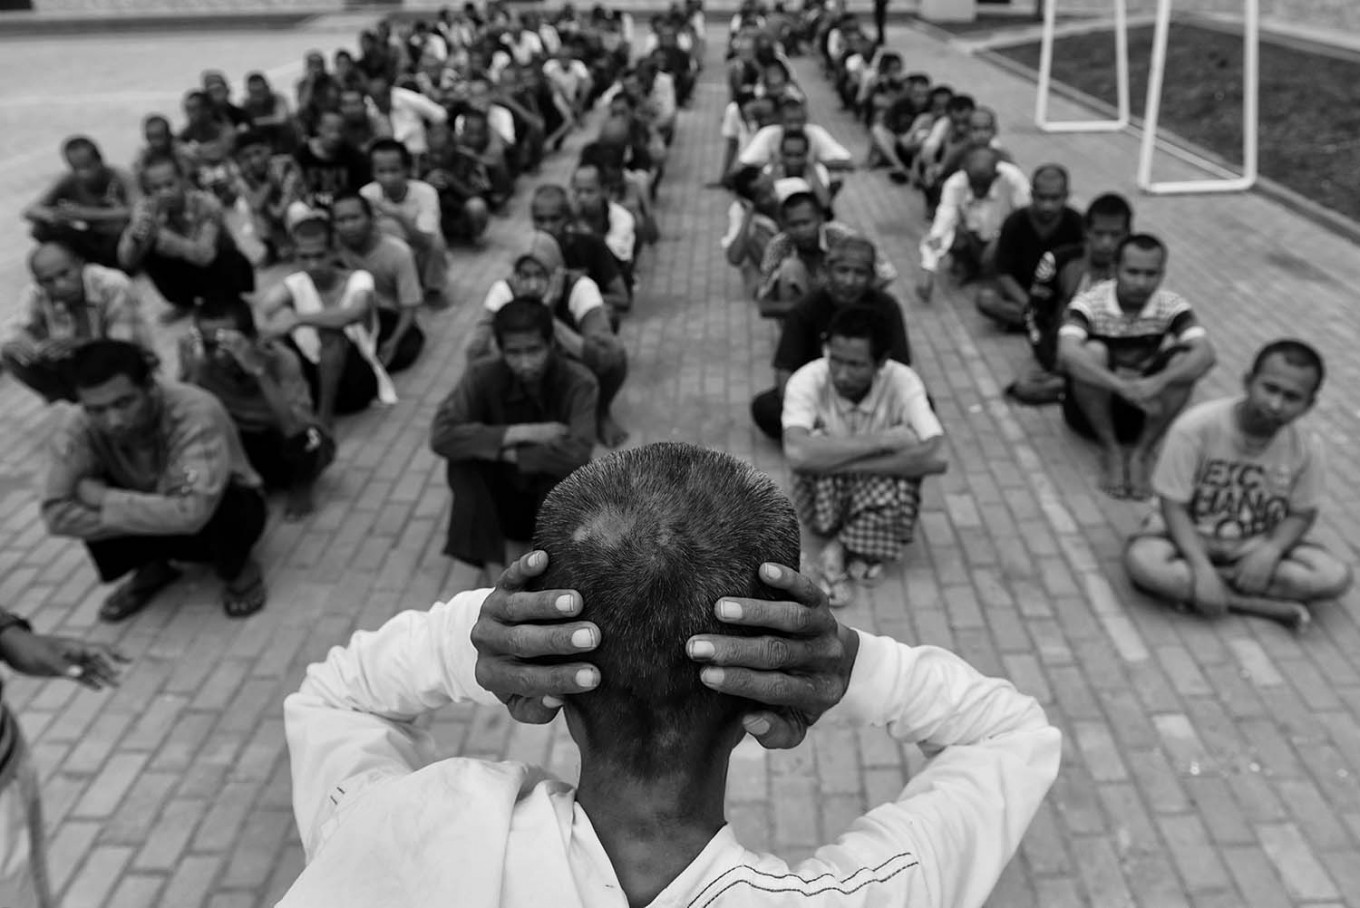 A patient shows his colleagues how to get rid of hallucinations by covering his ears. Antara/Hafidz Mubarak